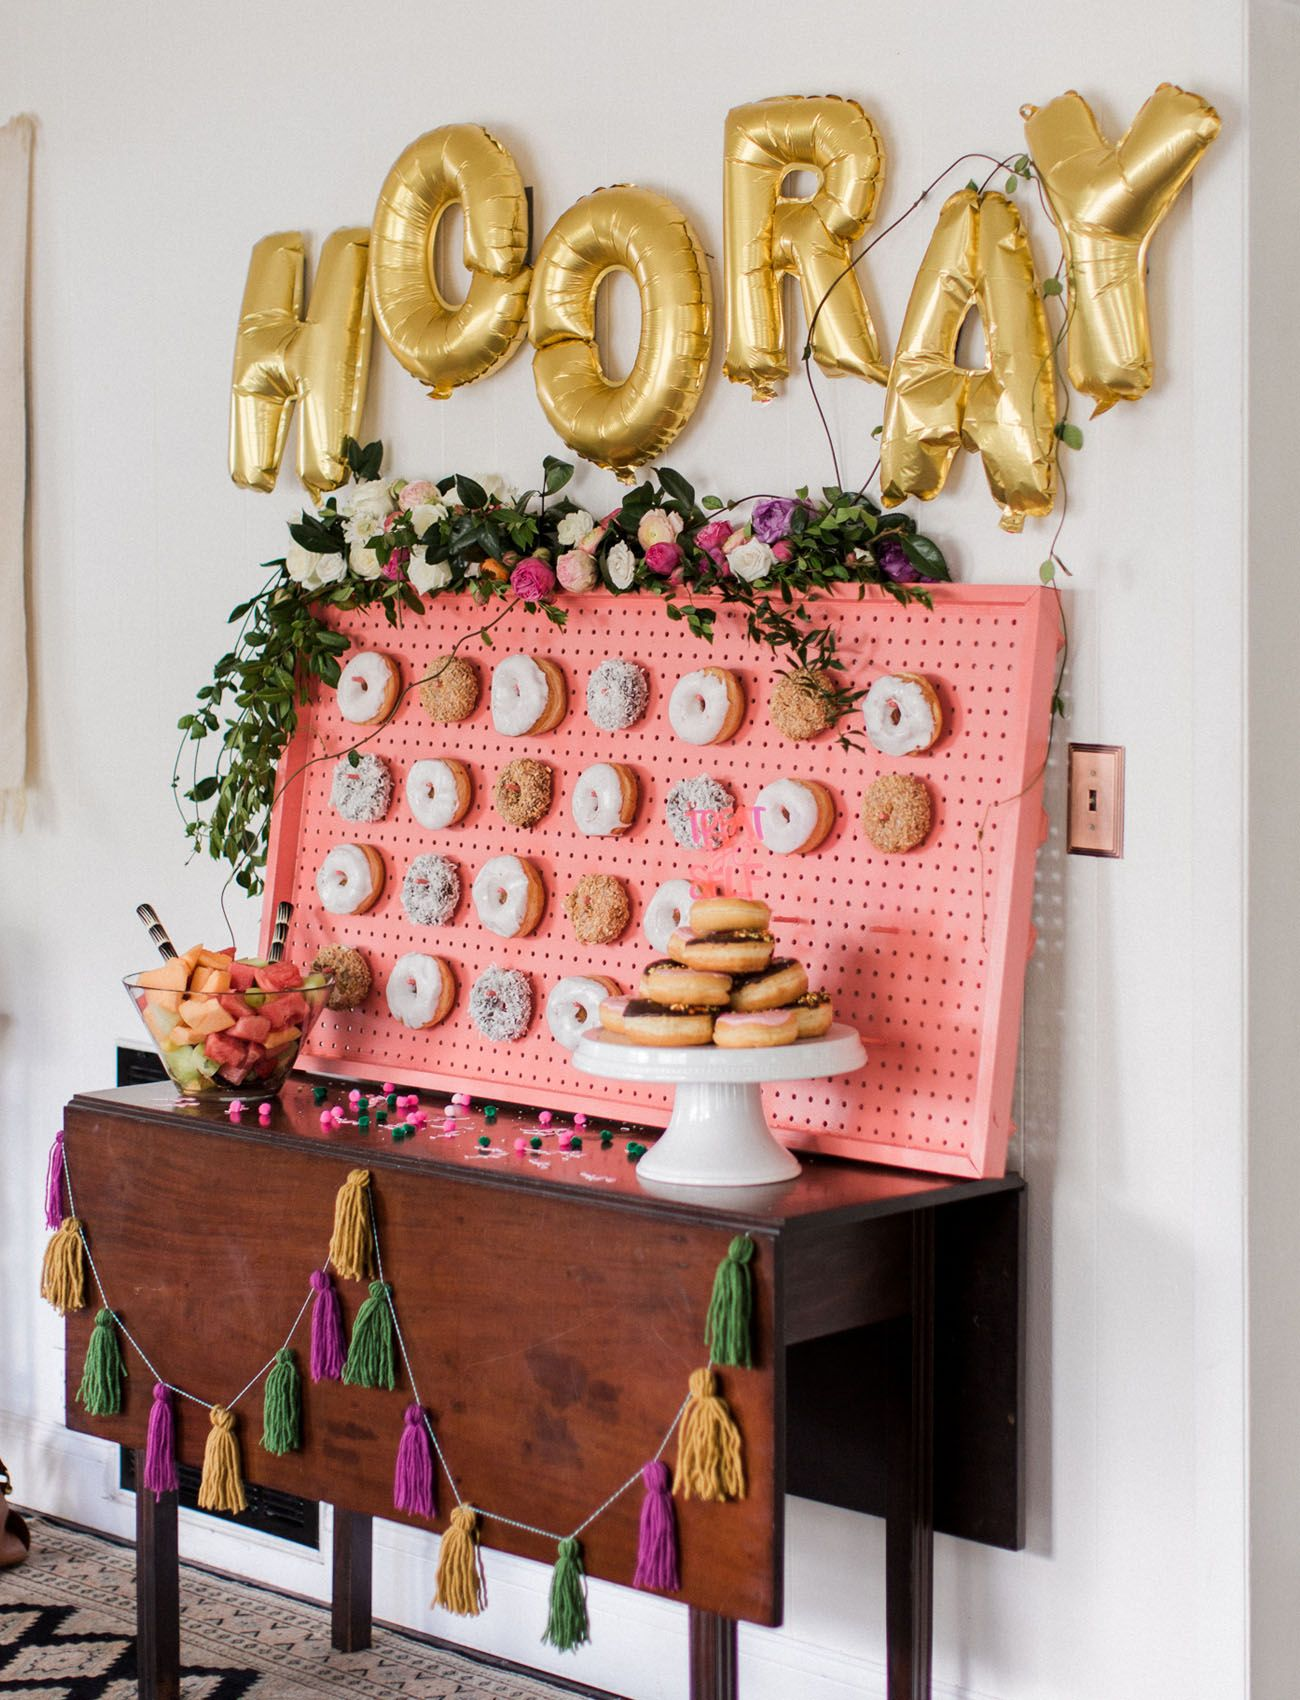 Tropical-Inspired Bridal Shower with a Donut Wall | Shower the Bride ...